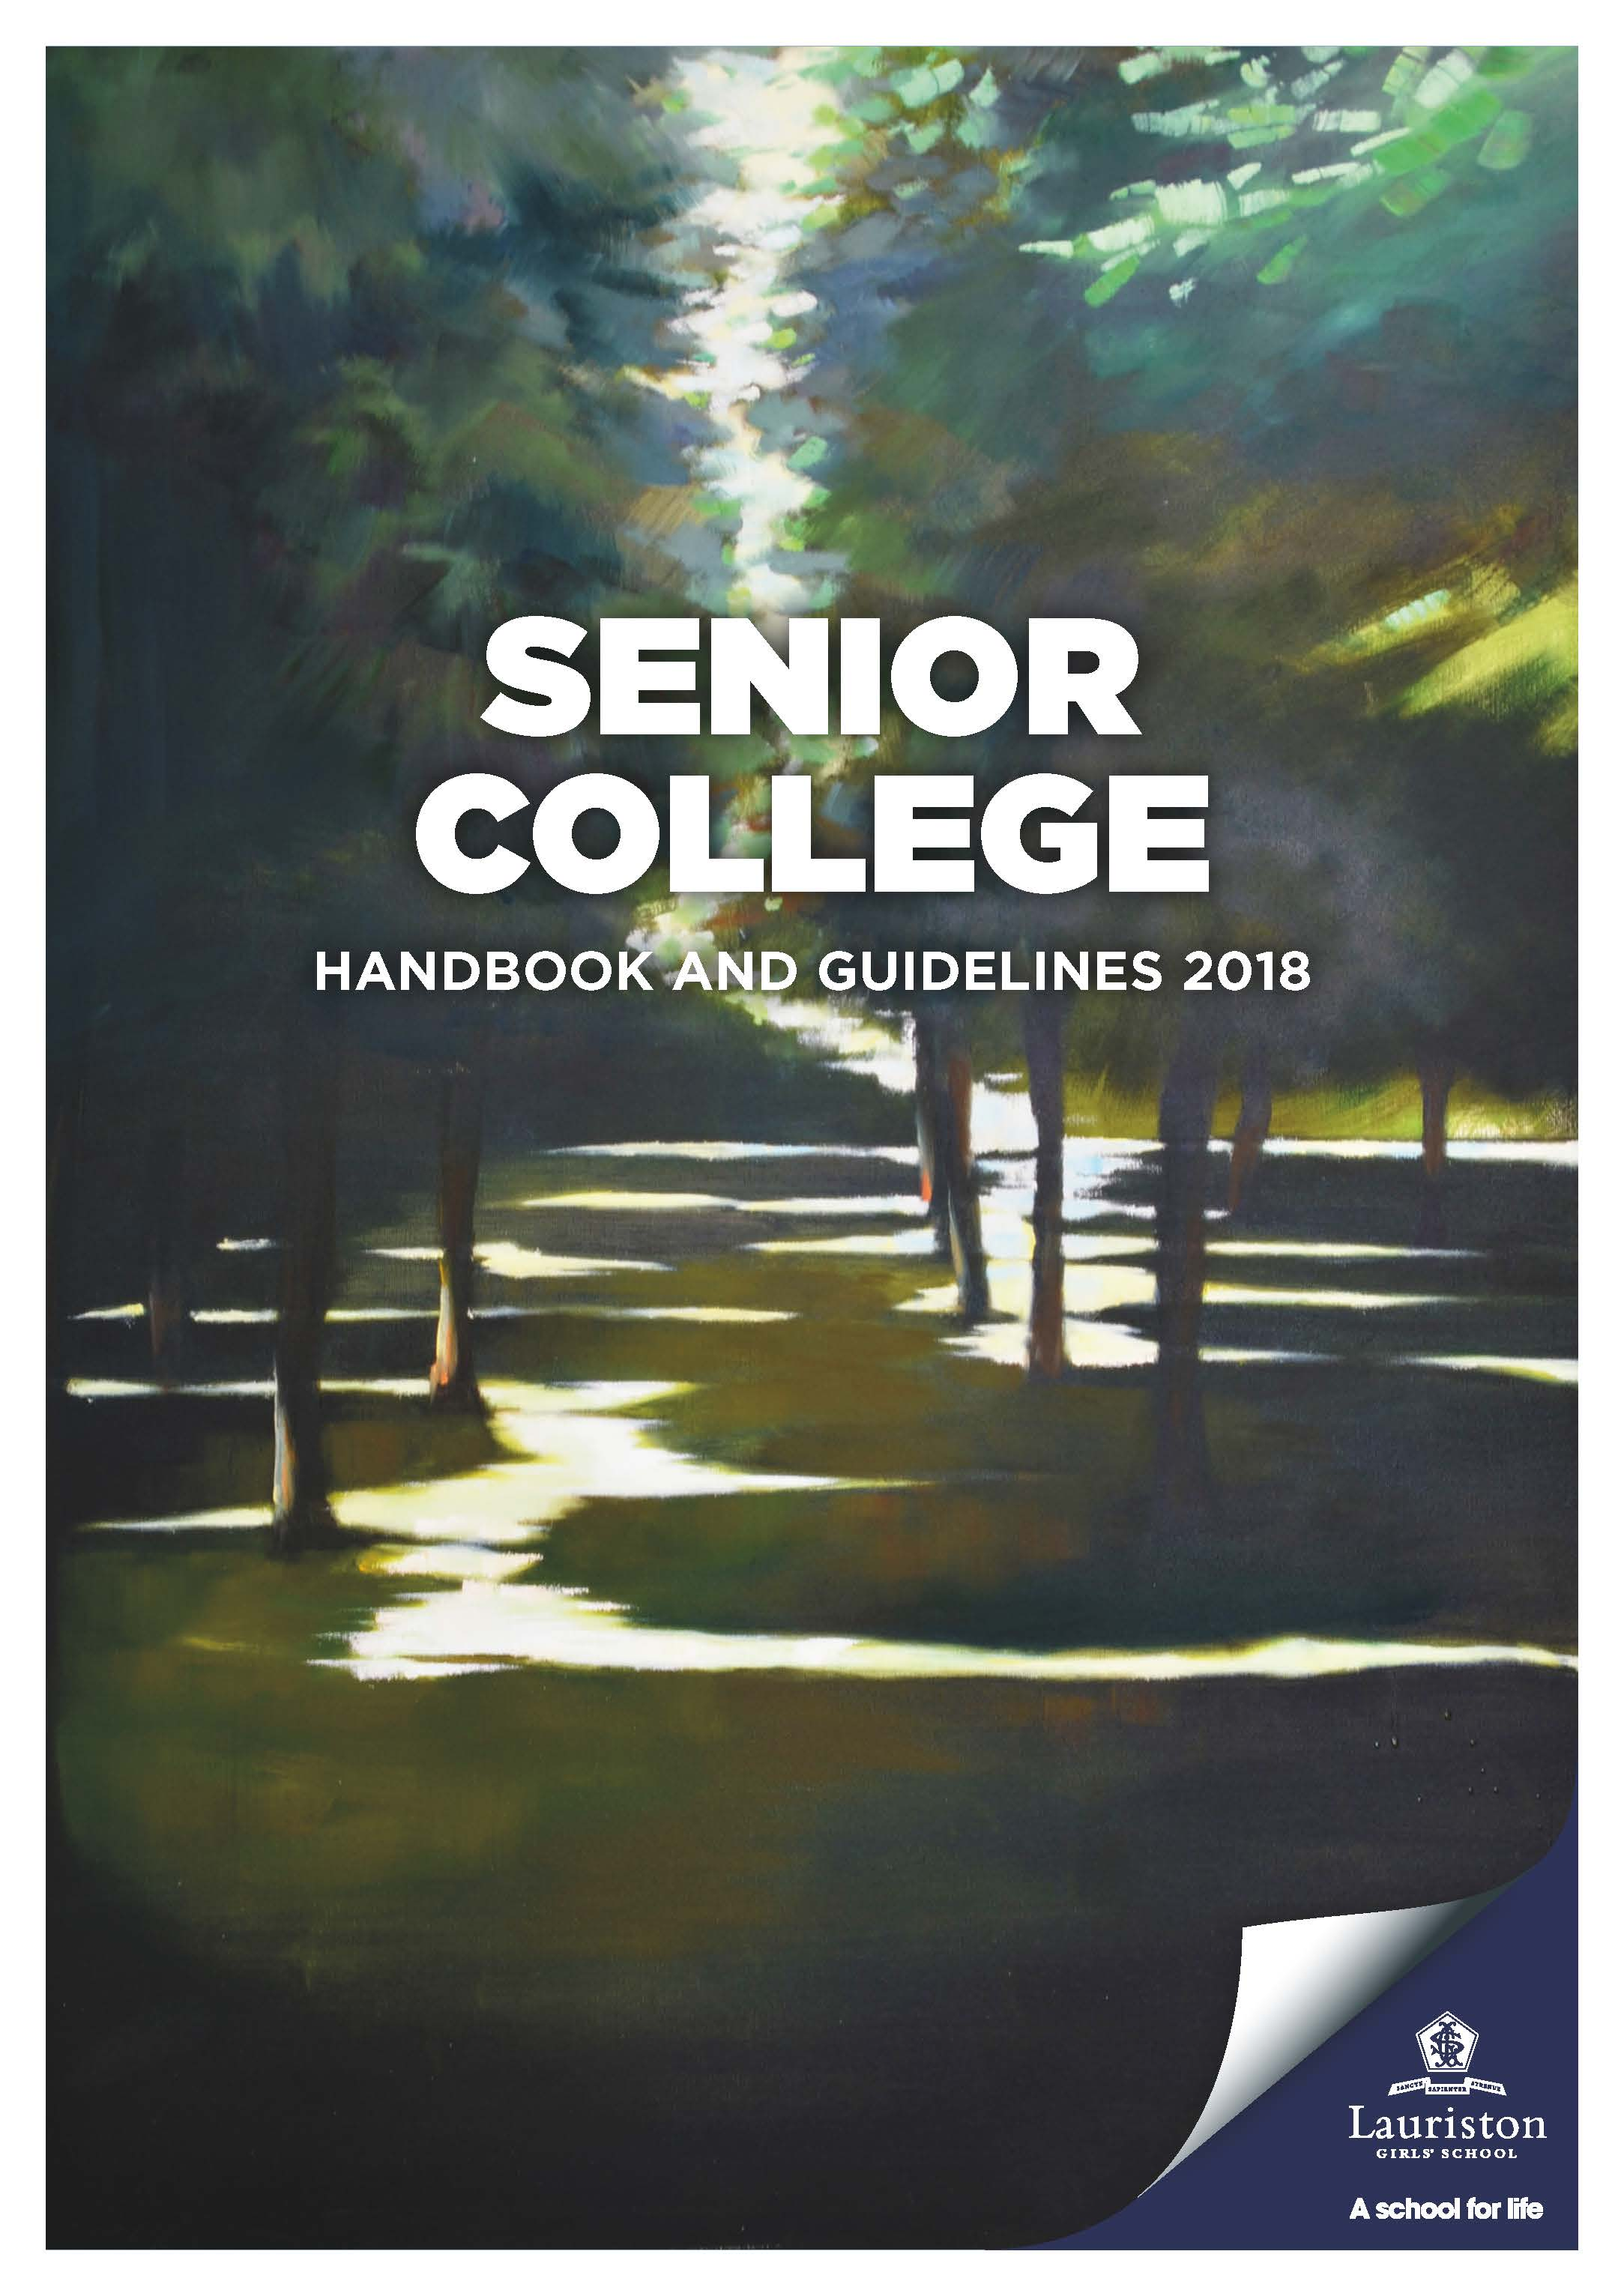 CoverSeniorHandbook2018